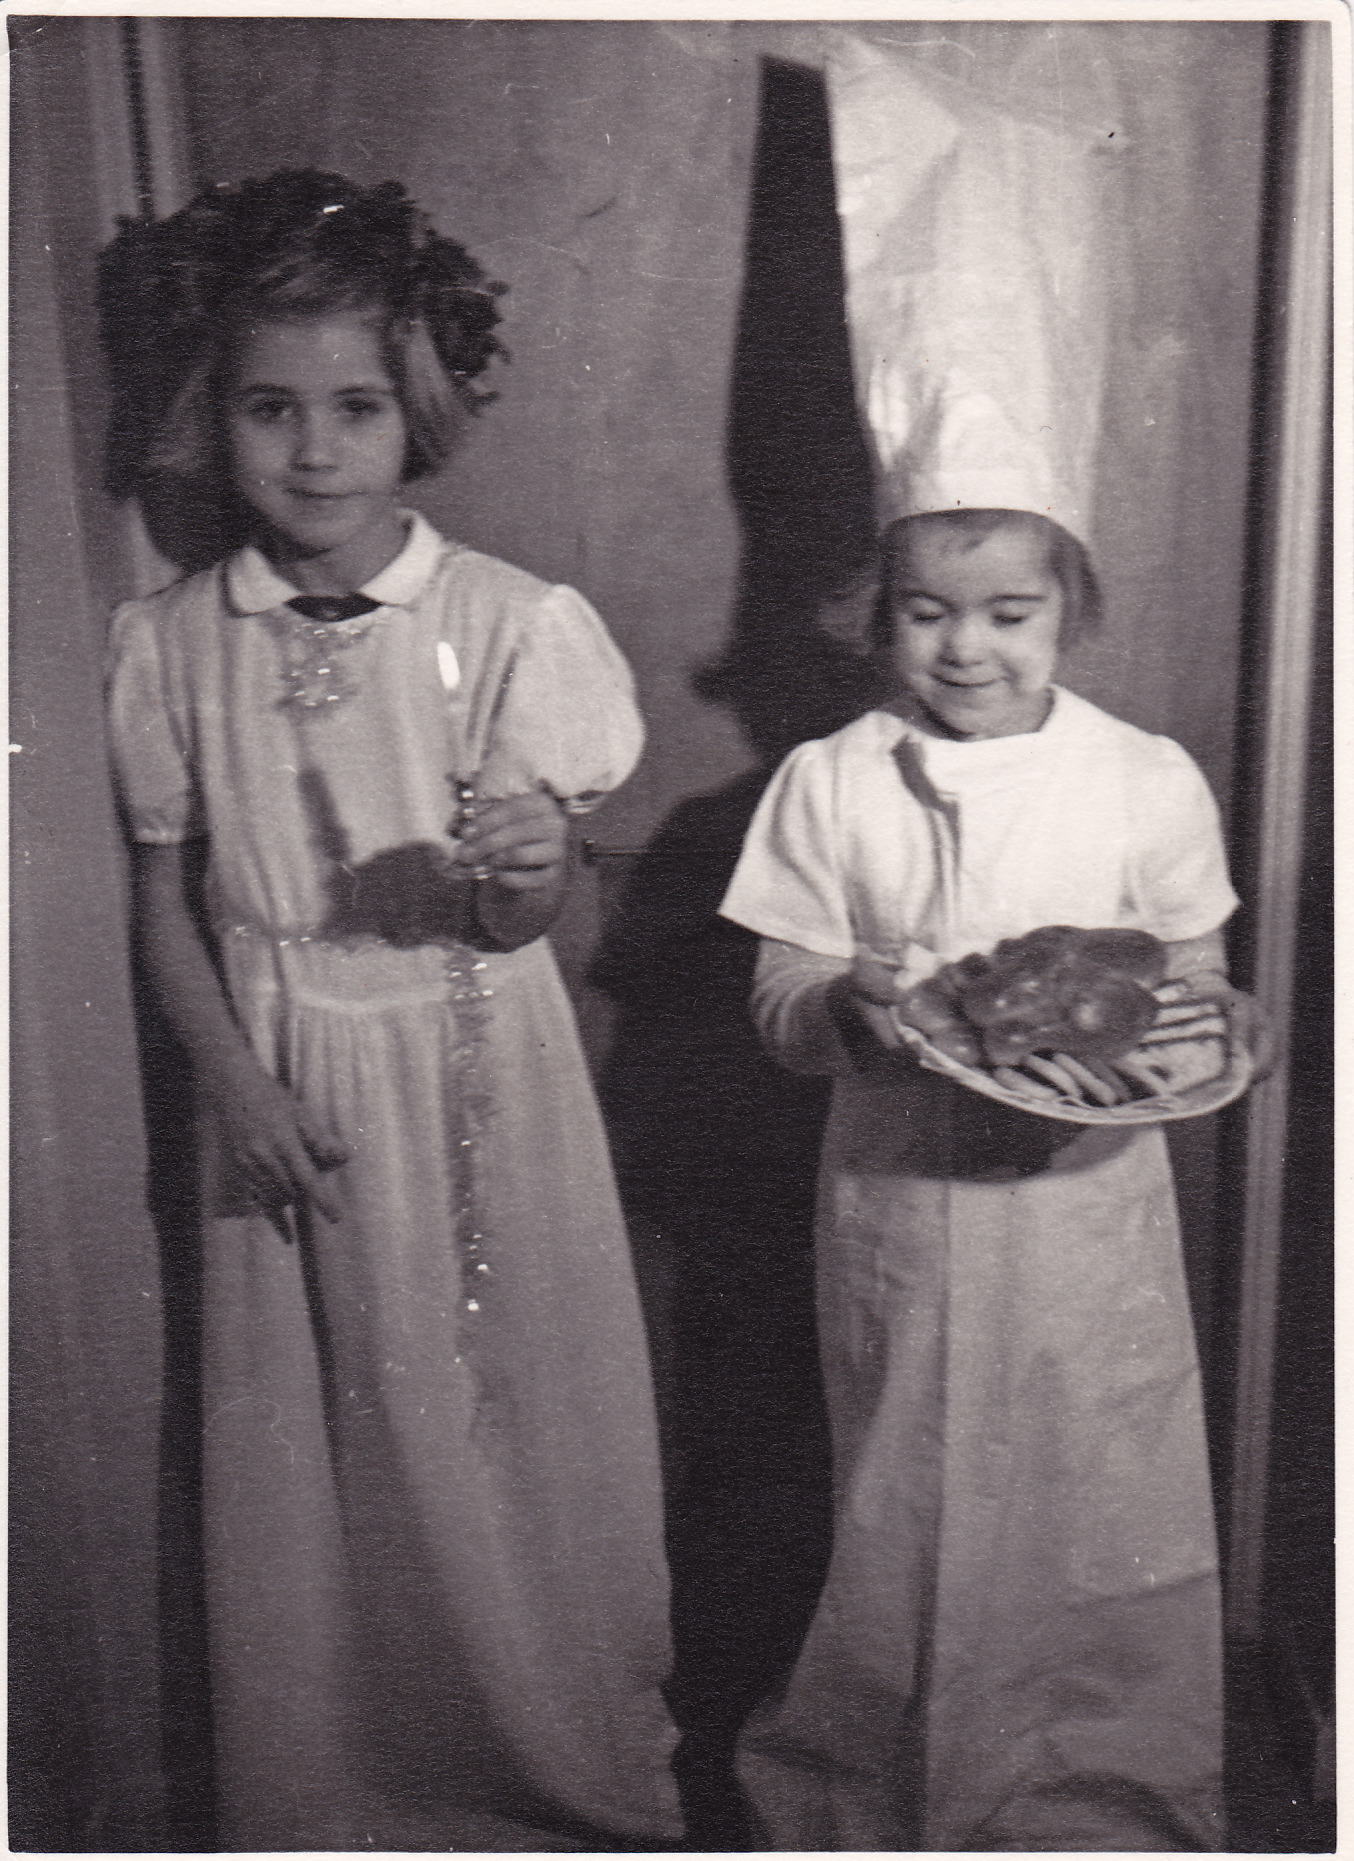 Lisbeth Pettersson, left, dressed up to celebrate the Swedish holiday Saint Lucia on December 13, 1949 with her younger sister Ann-Marie.